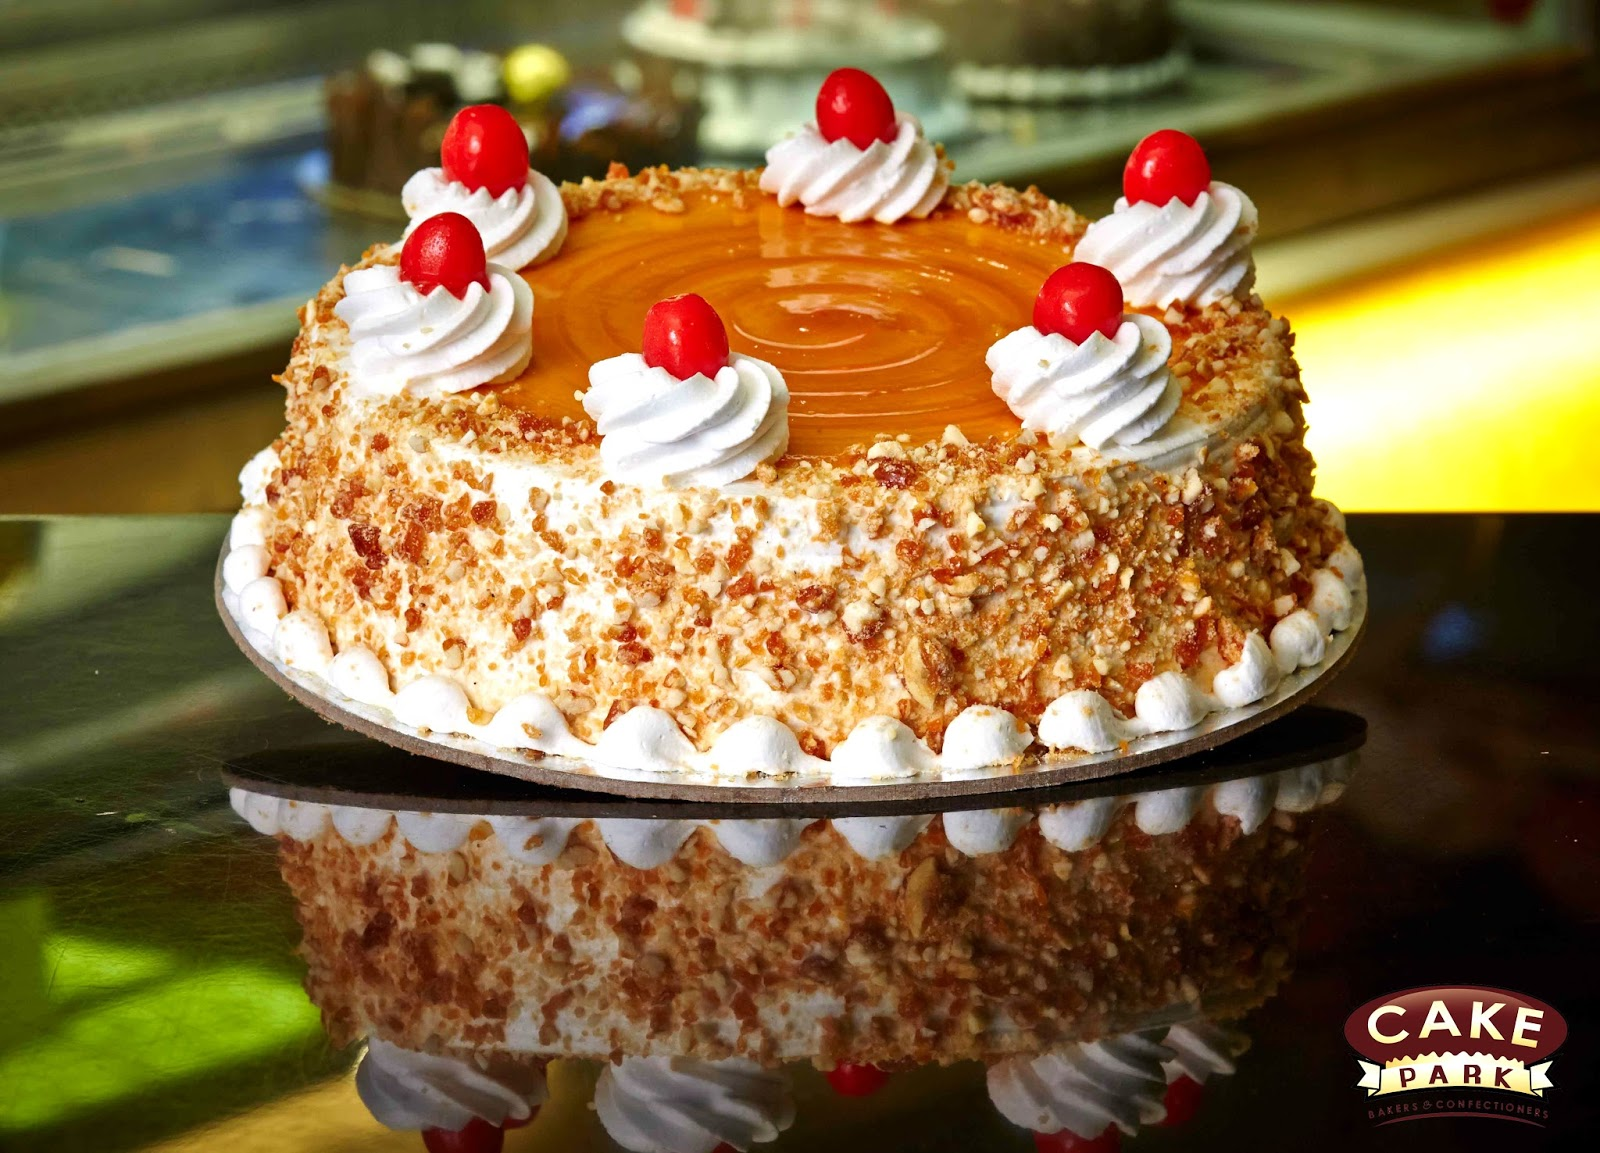 Cake Park Looking For Delicious Birthday Cakes In Chennai